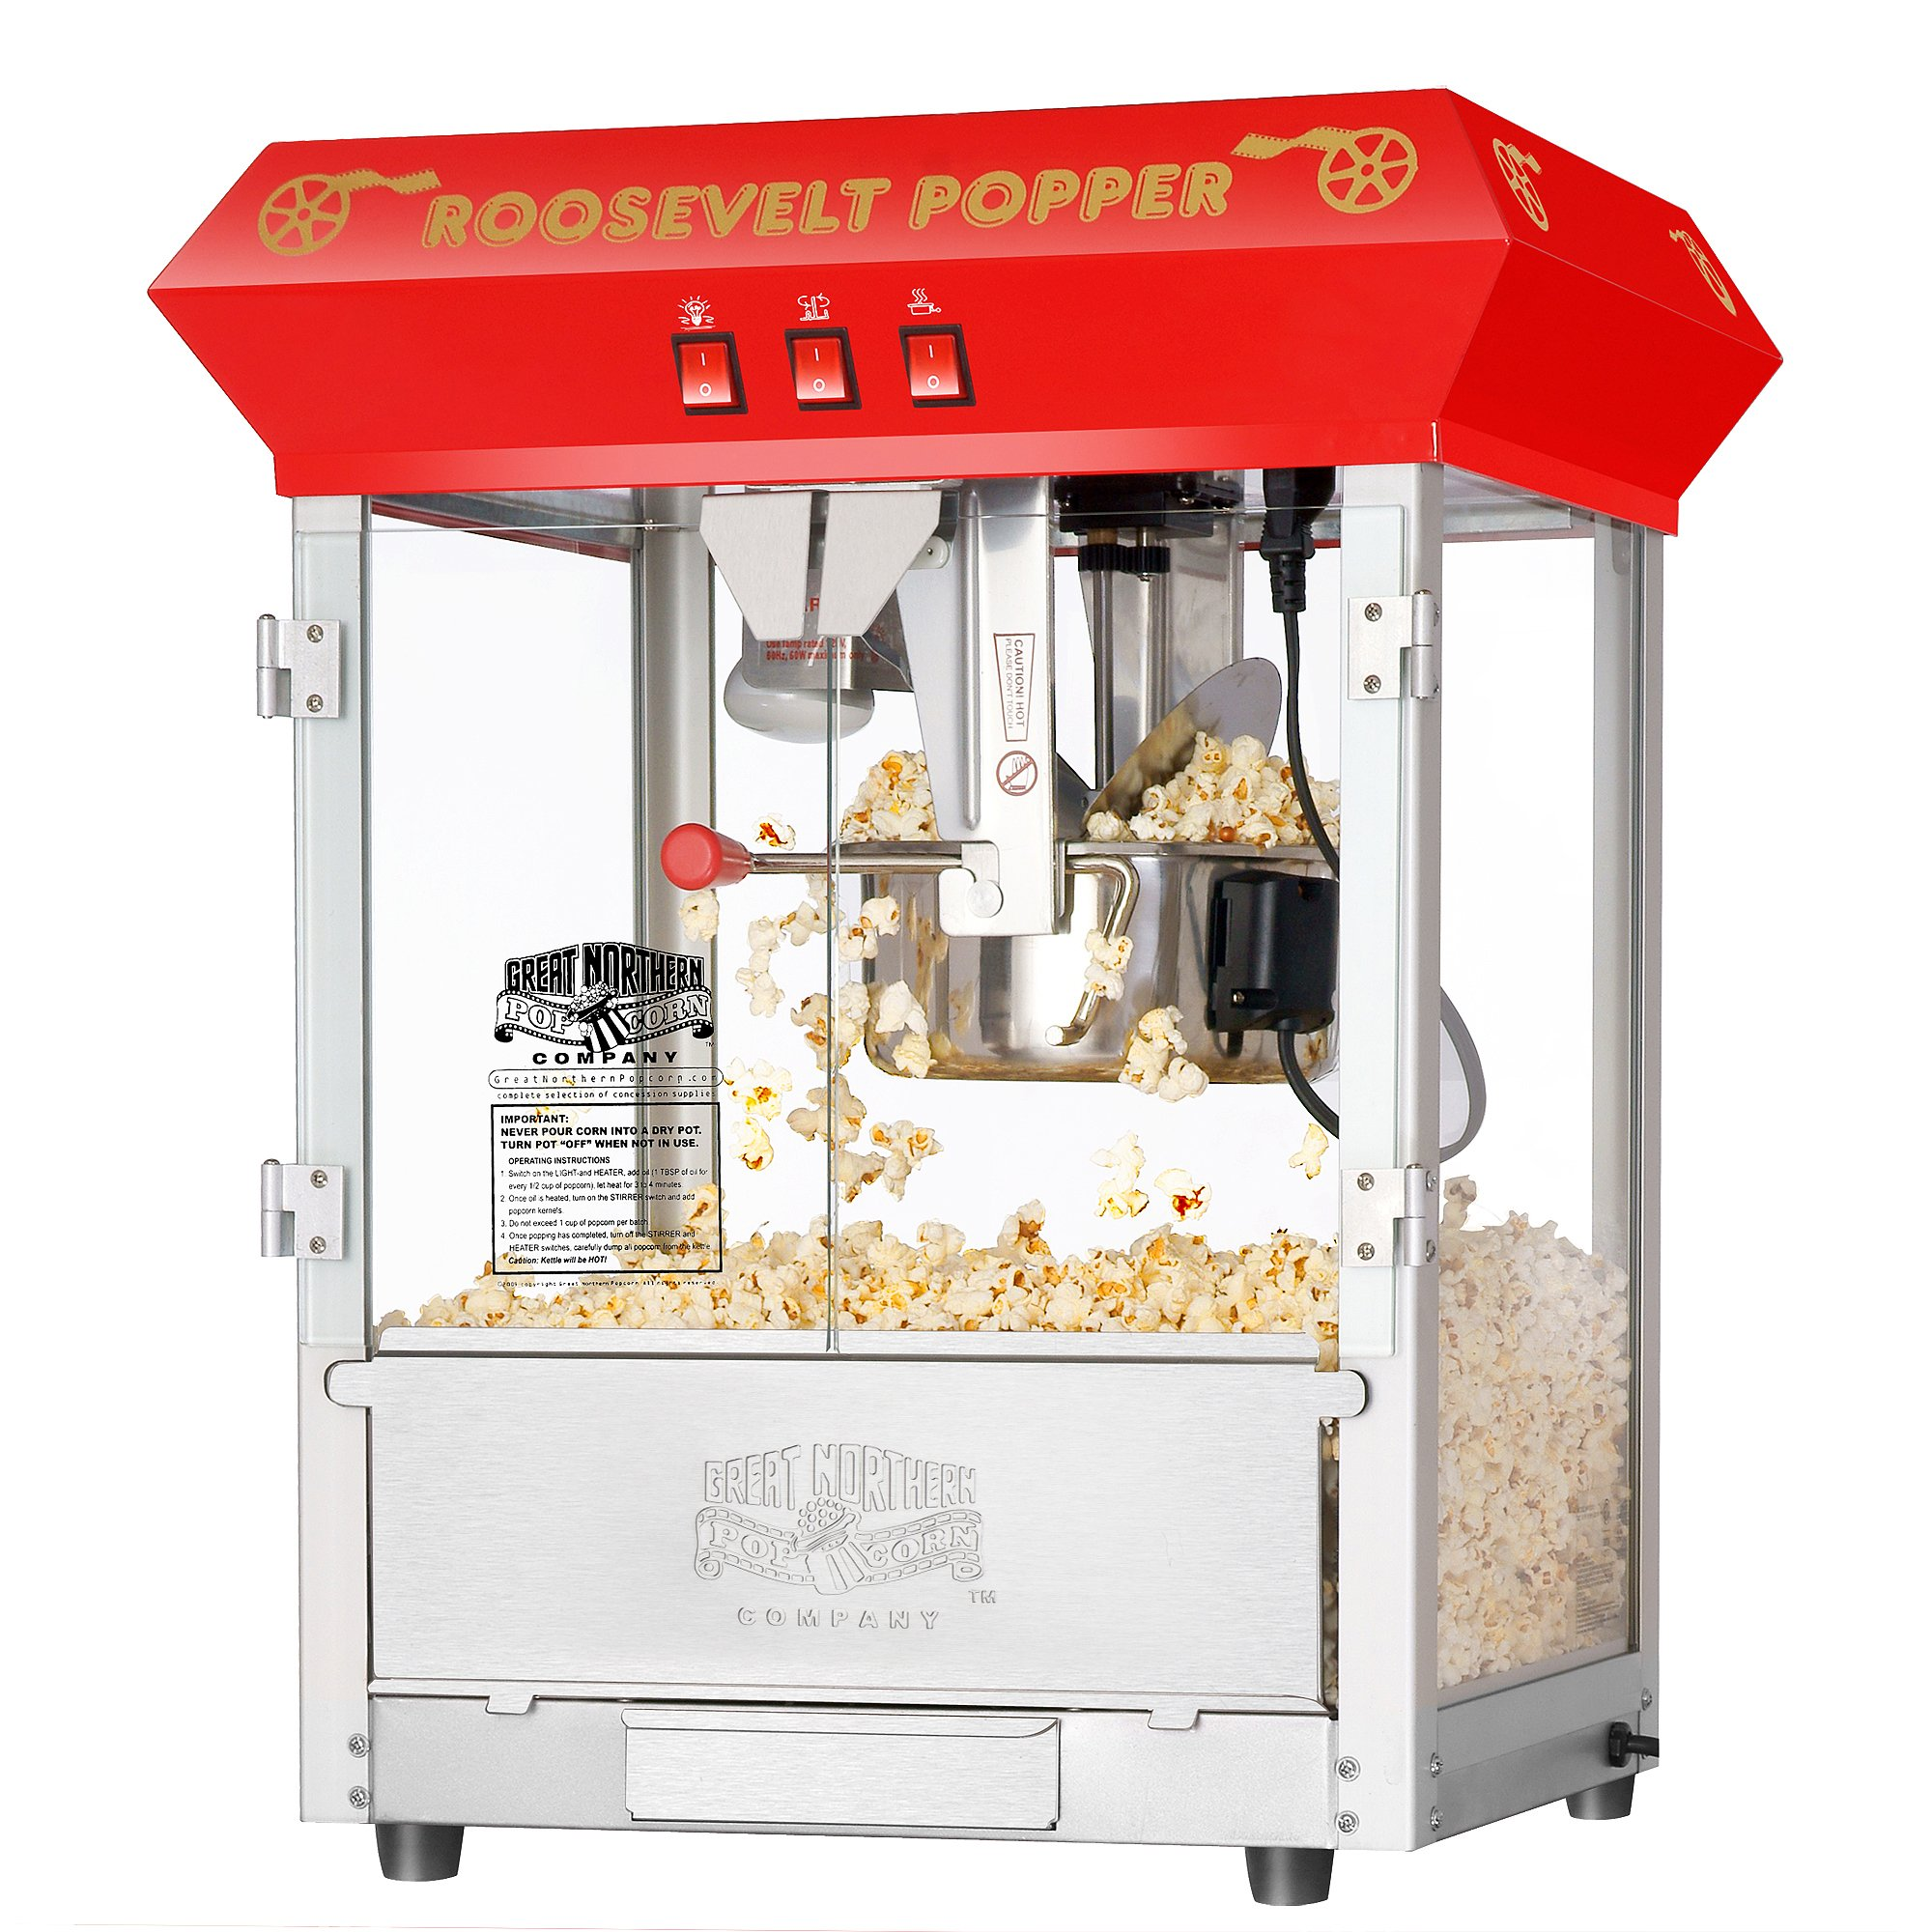 Great Northern Popcorn 6010 Roosevelt Top Antique Style Popcorn Popper Machine, 8-Ounce by Great Northern Popcorn Company (Image #1)